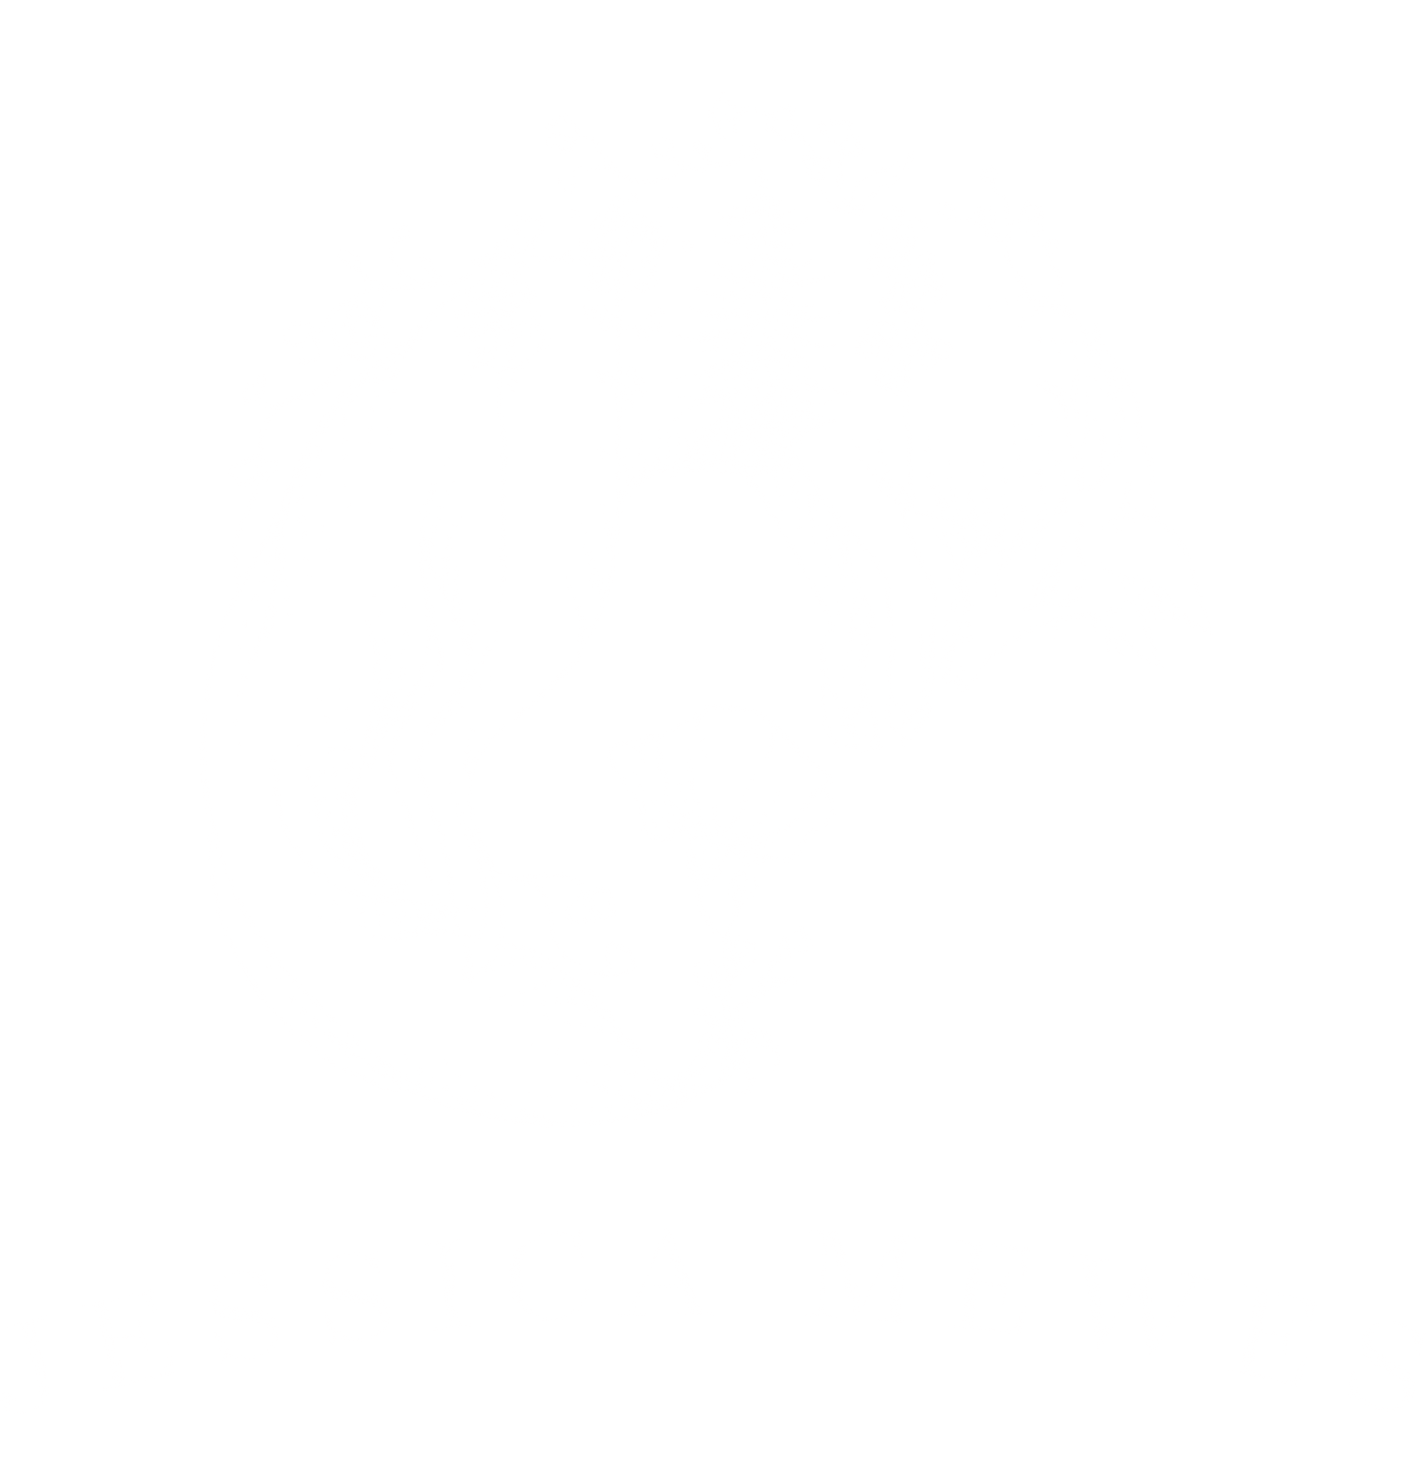 Jessica Mewes Photography & Design